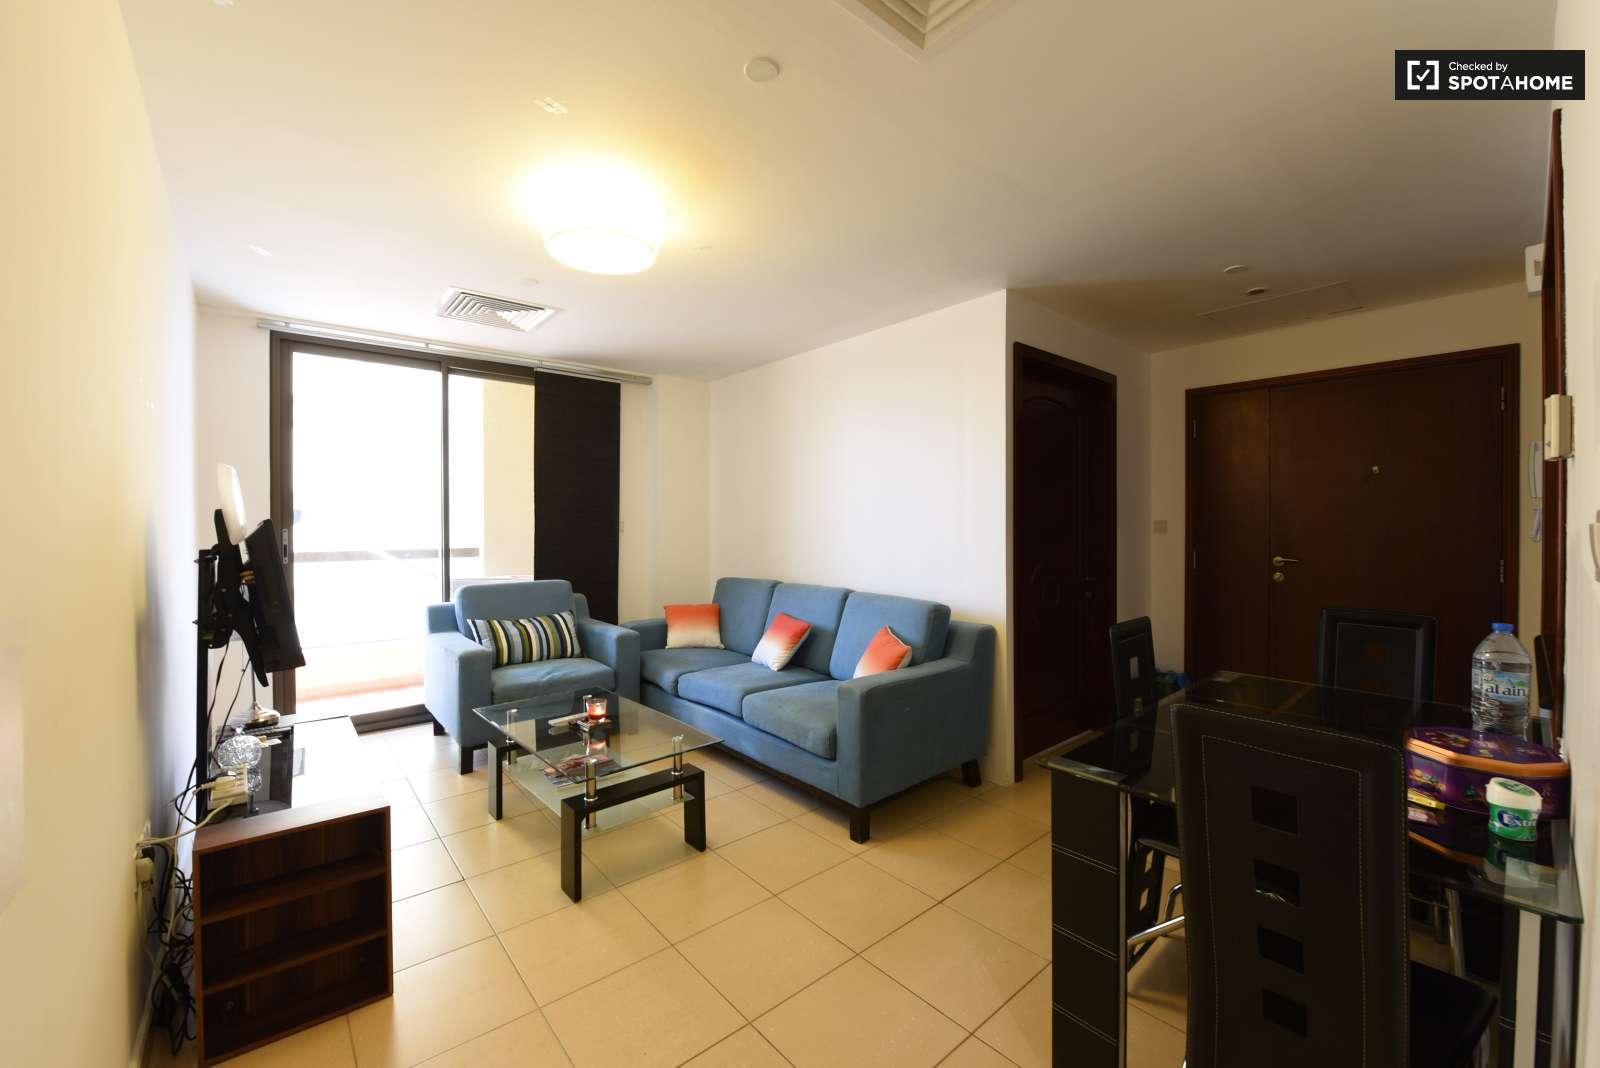 Cozy Room In 5 Bedroom Apartment In Dubai Marina Dubai Ref  # Muebles Bizkaia Guenes